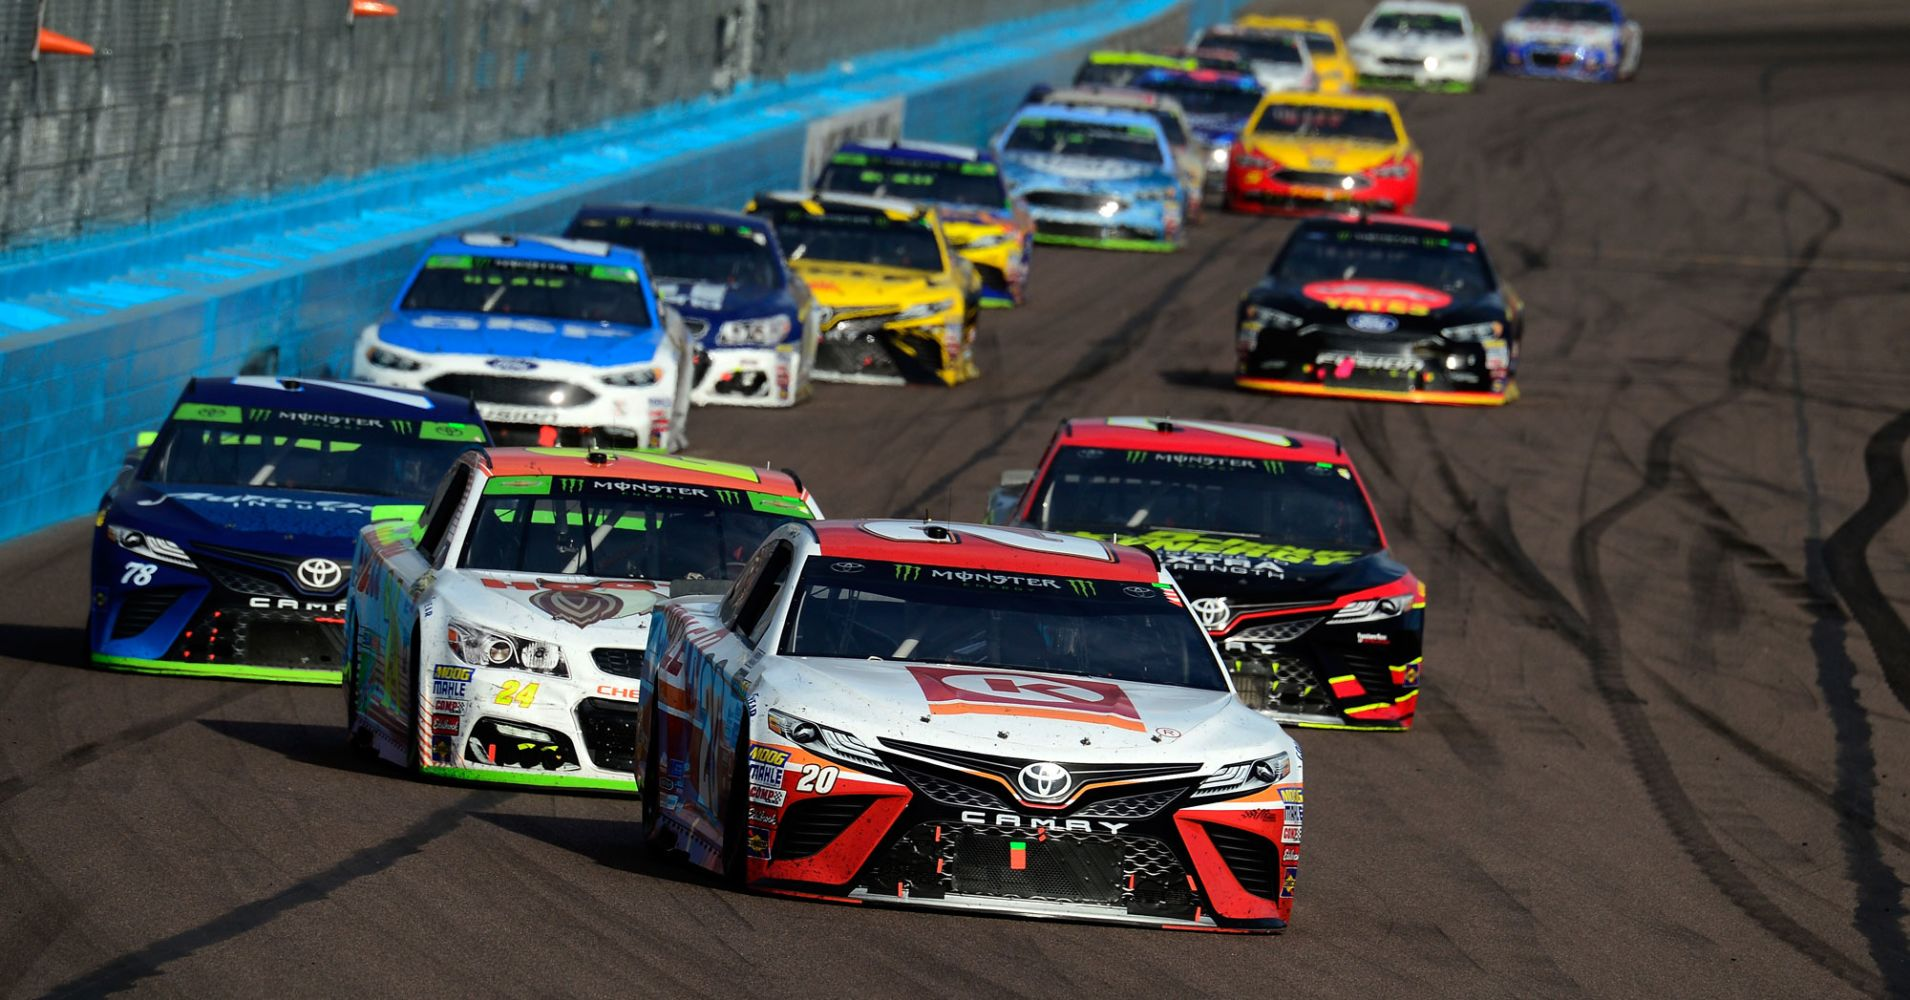 NASCAR and the history of Stock Car Racing